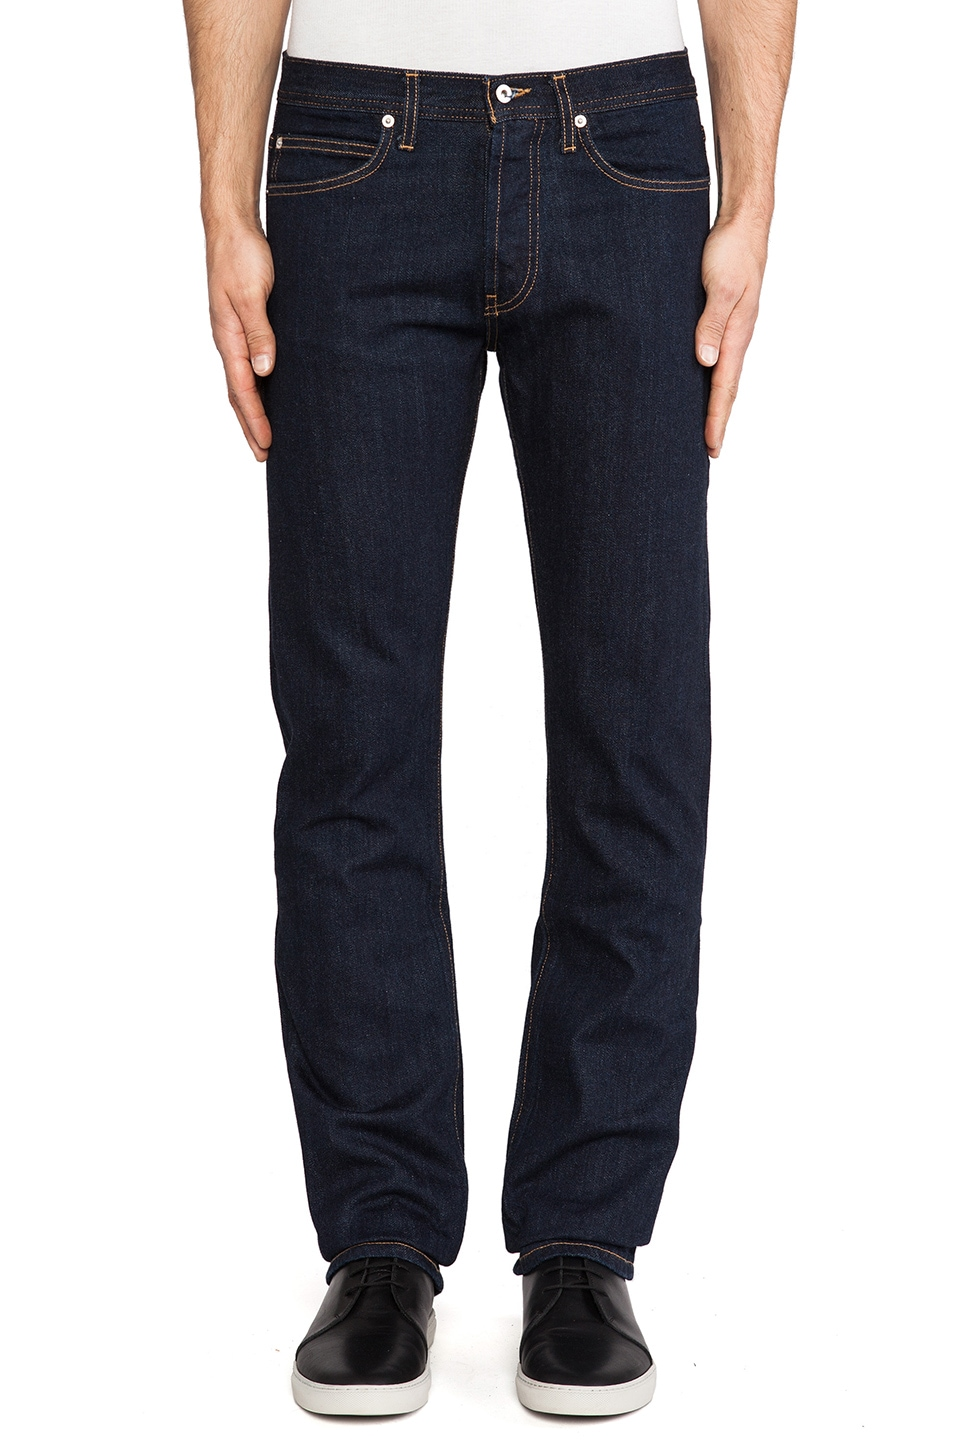 United Stock Dry Goods Narrow in Indigo Rinse